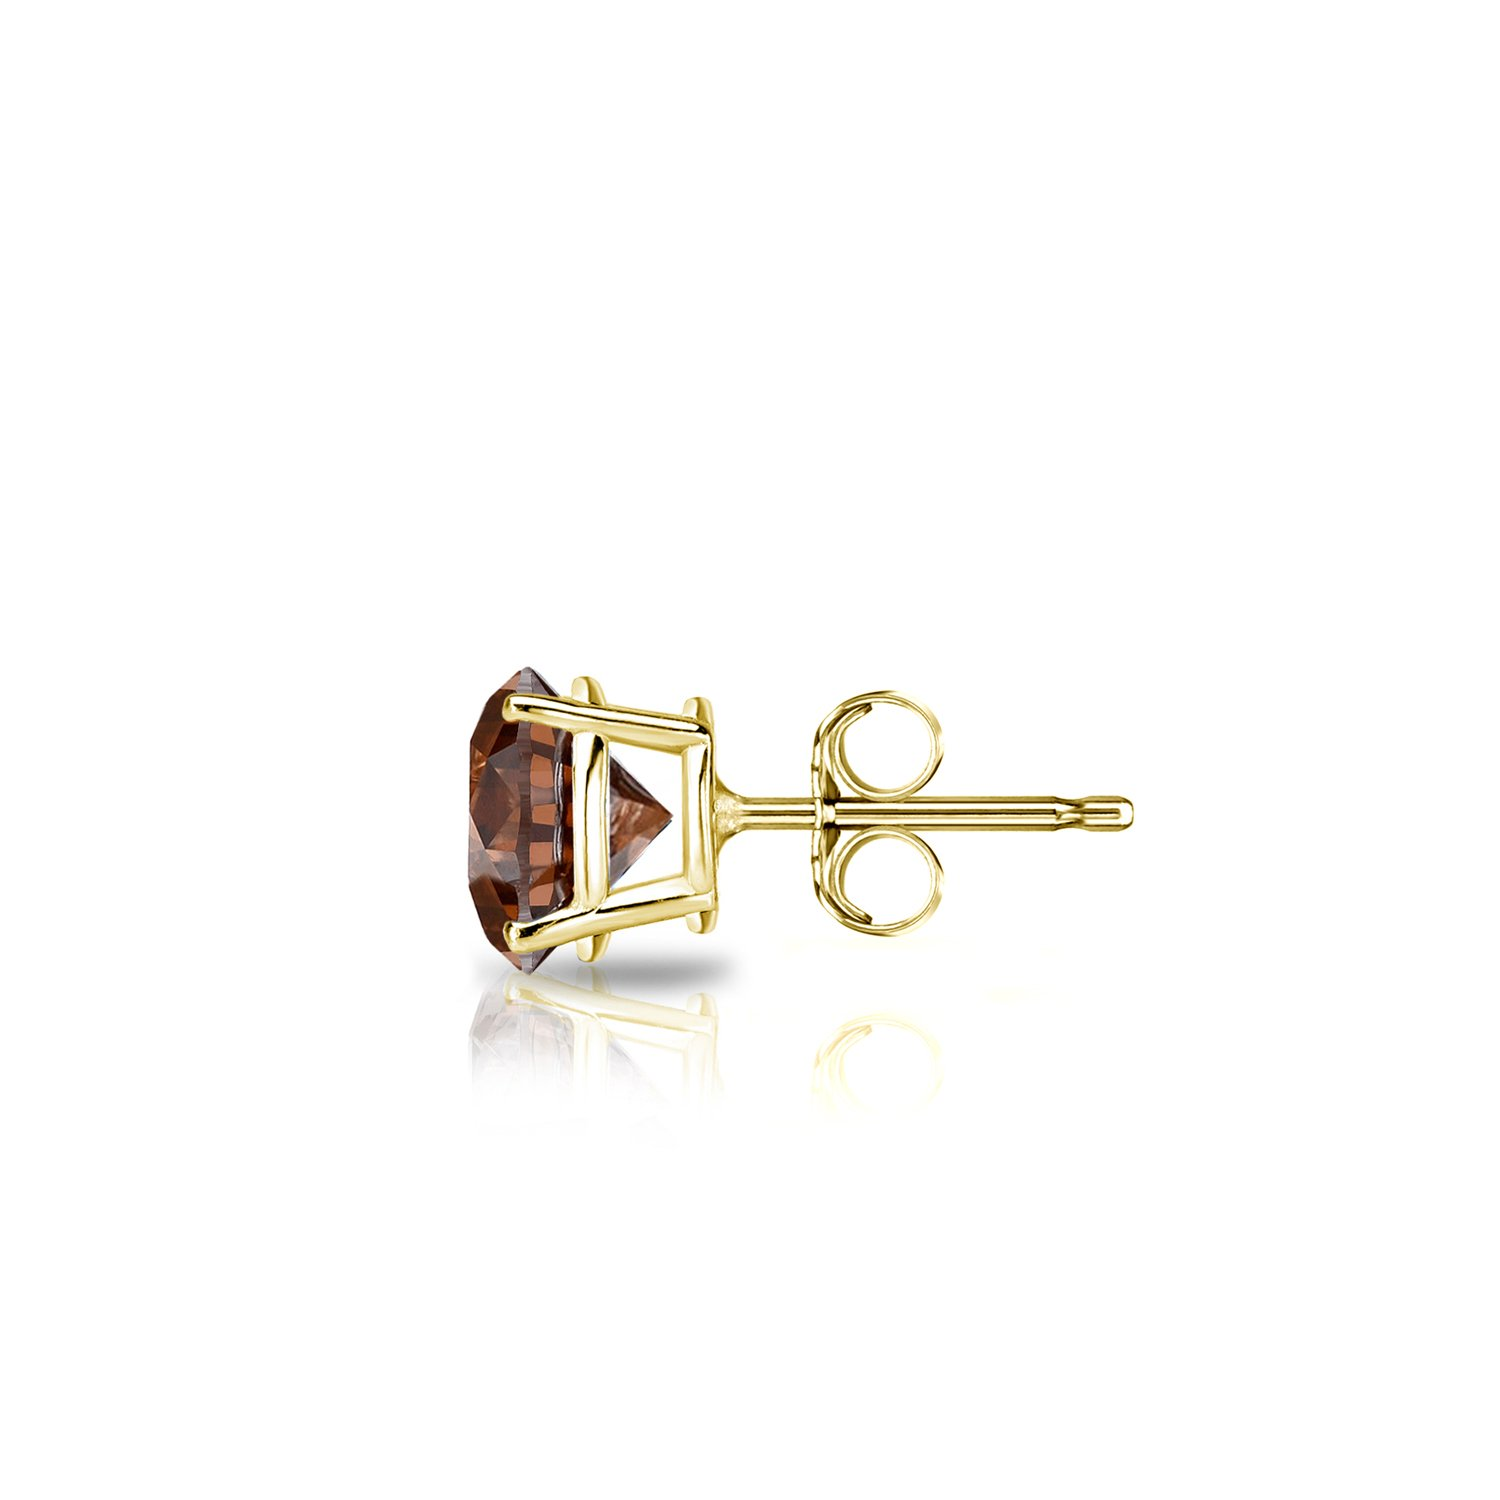 Diamond Wish 14k Yellow Gold Single Stud Round Brown Diamond Earring (1/2 ct, Brown, SI1-SI2) 4-Prong Basket with Push-Back by Diamond Wish (Image #2)